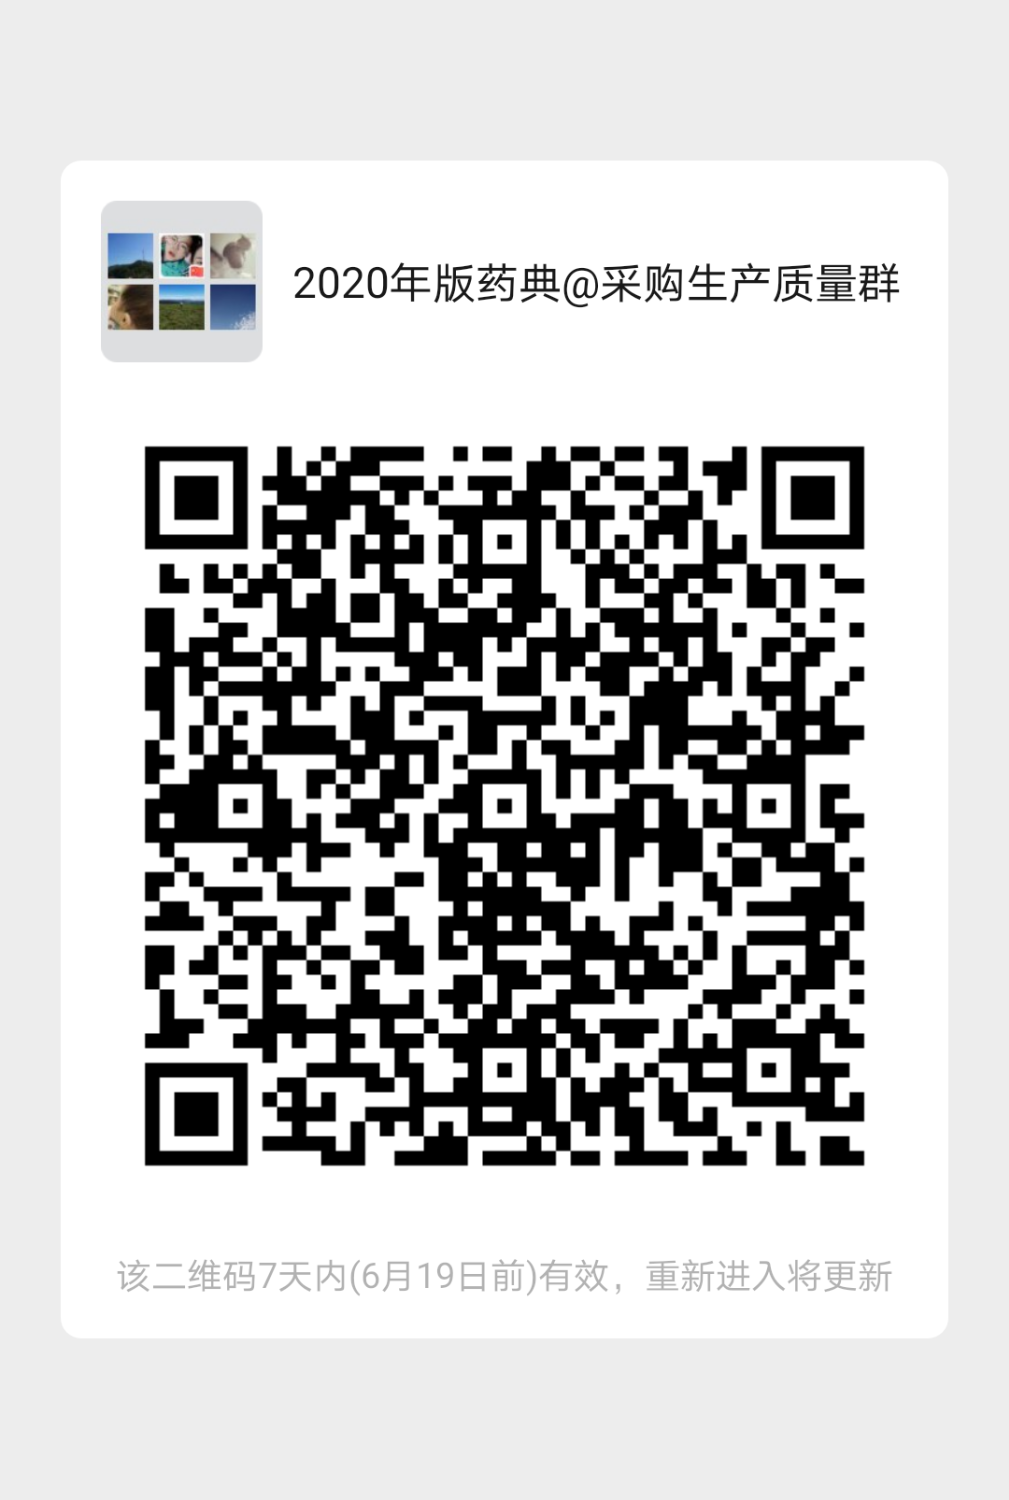 mmqrcode1591970823326.png